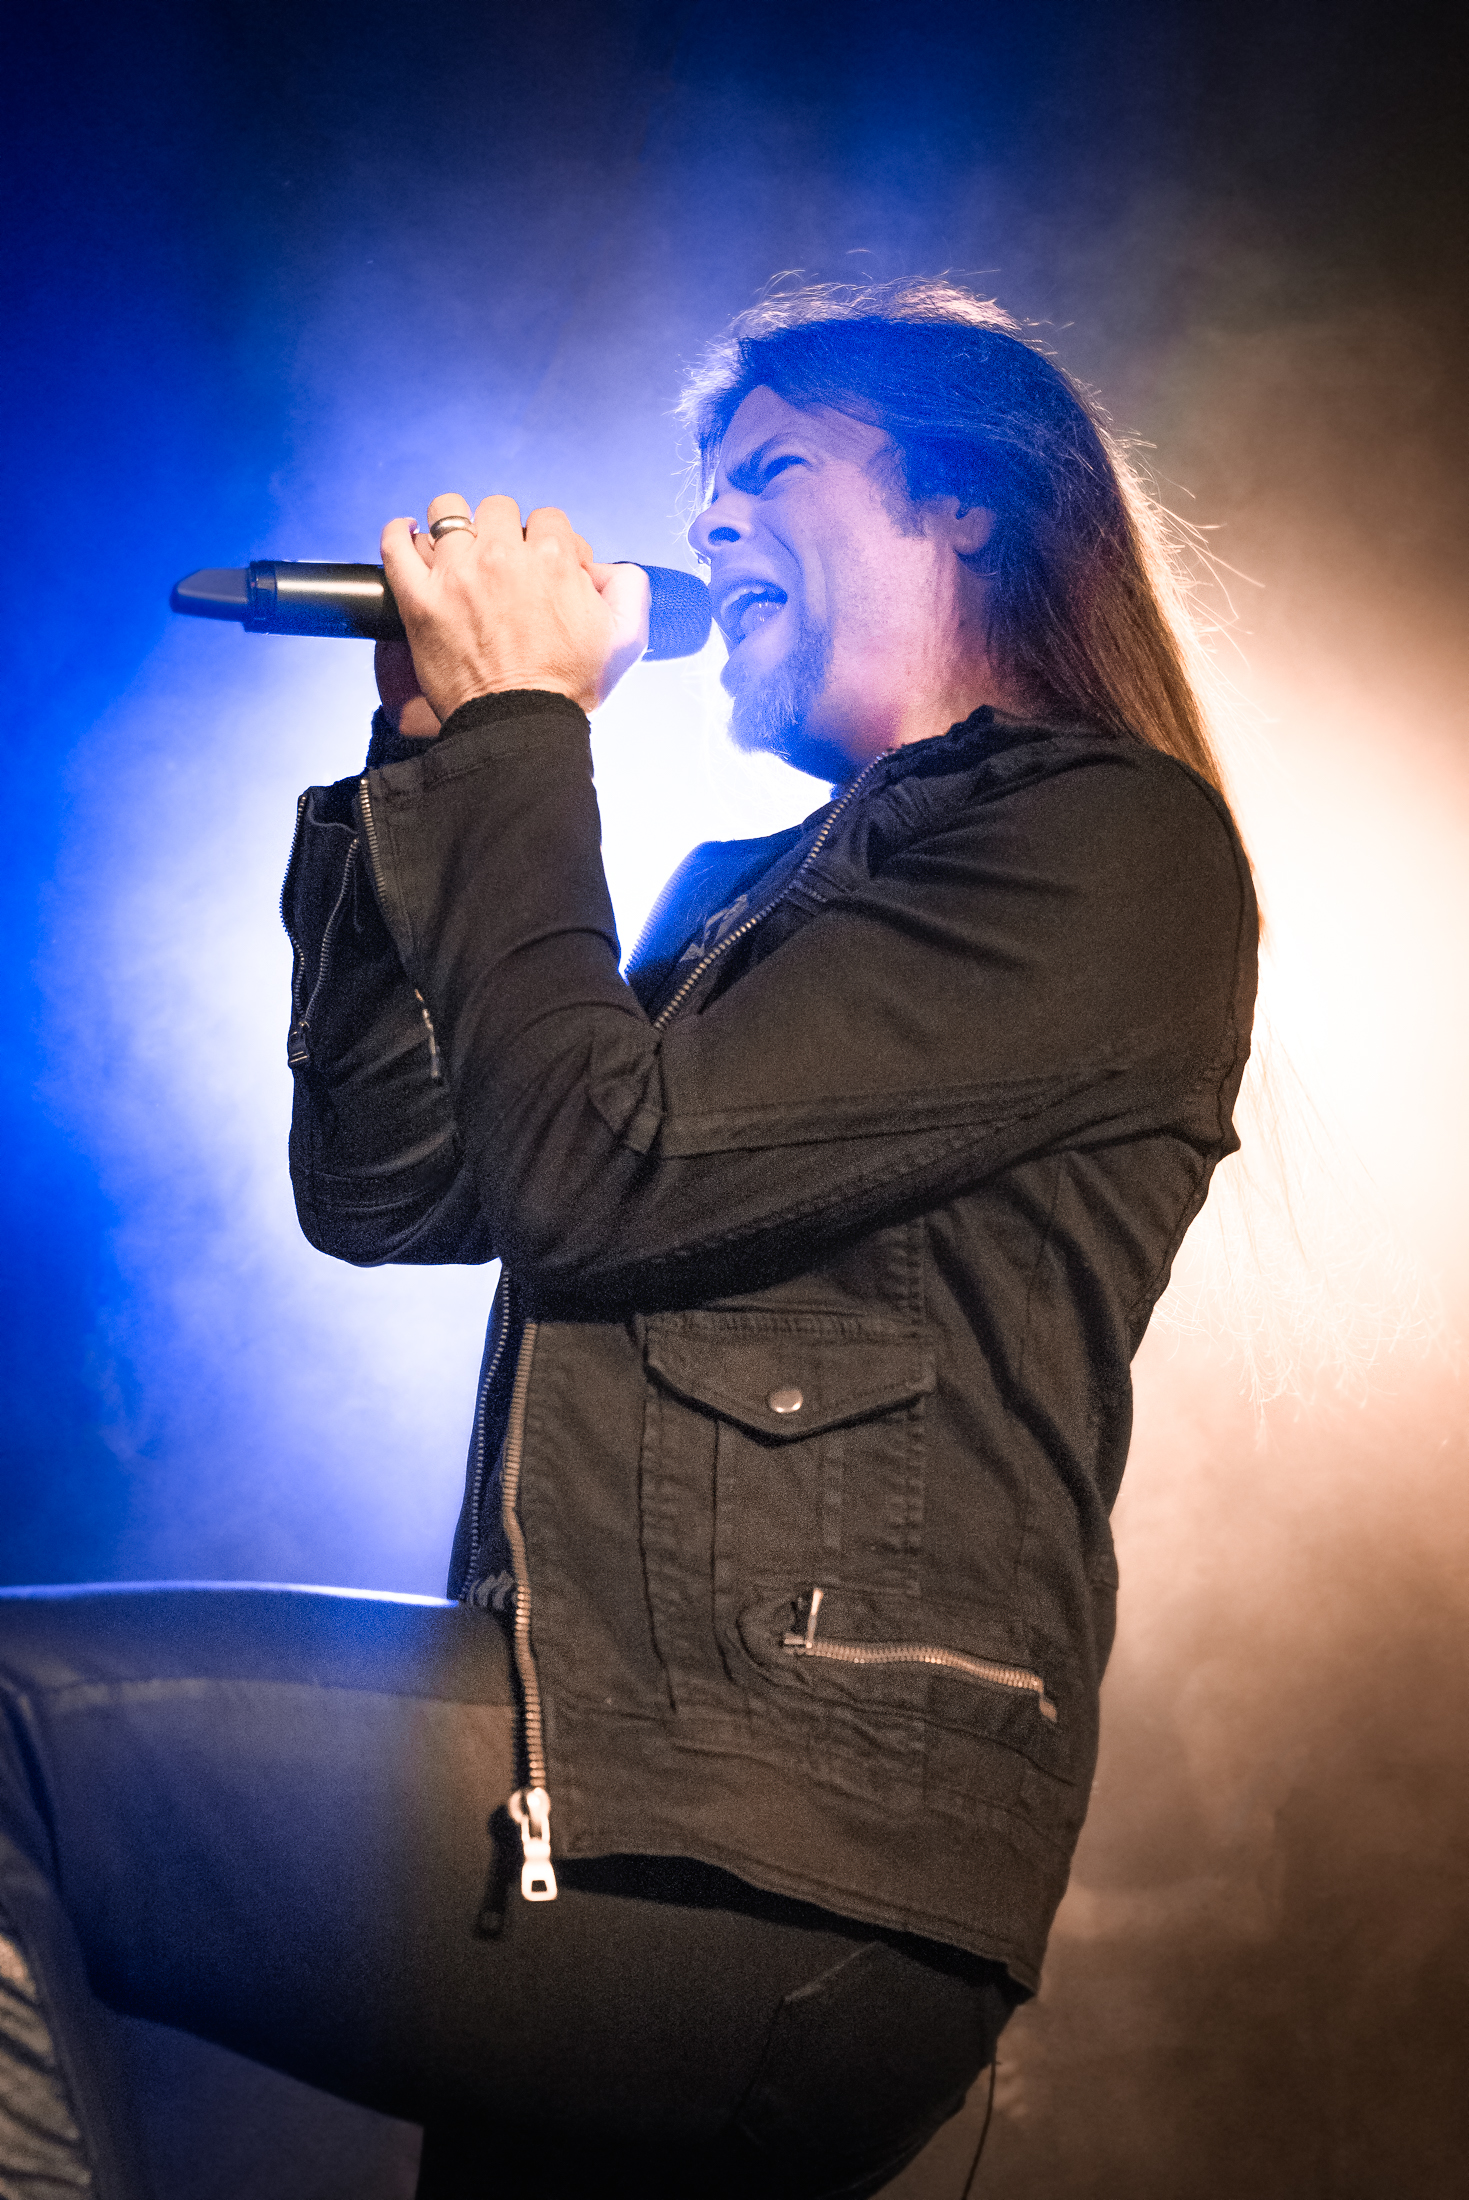 queensryche - melbourne - 2016 - paul tadday photography - 5.jpg